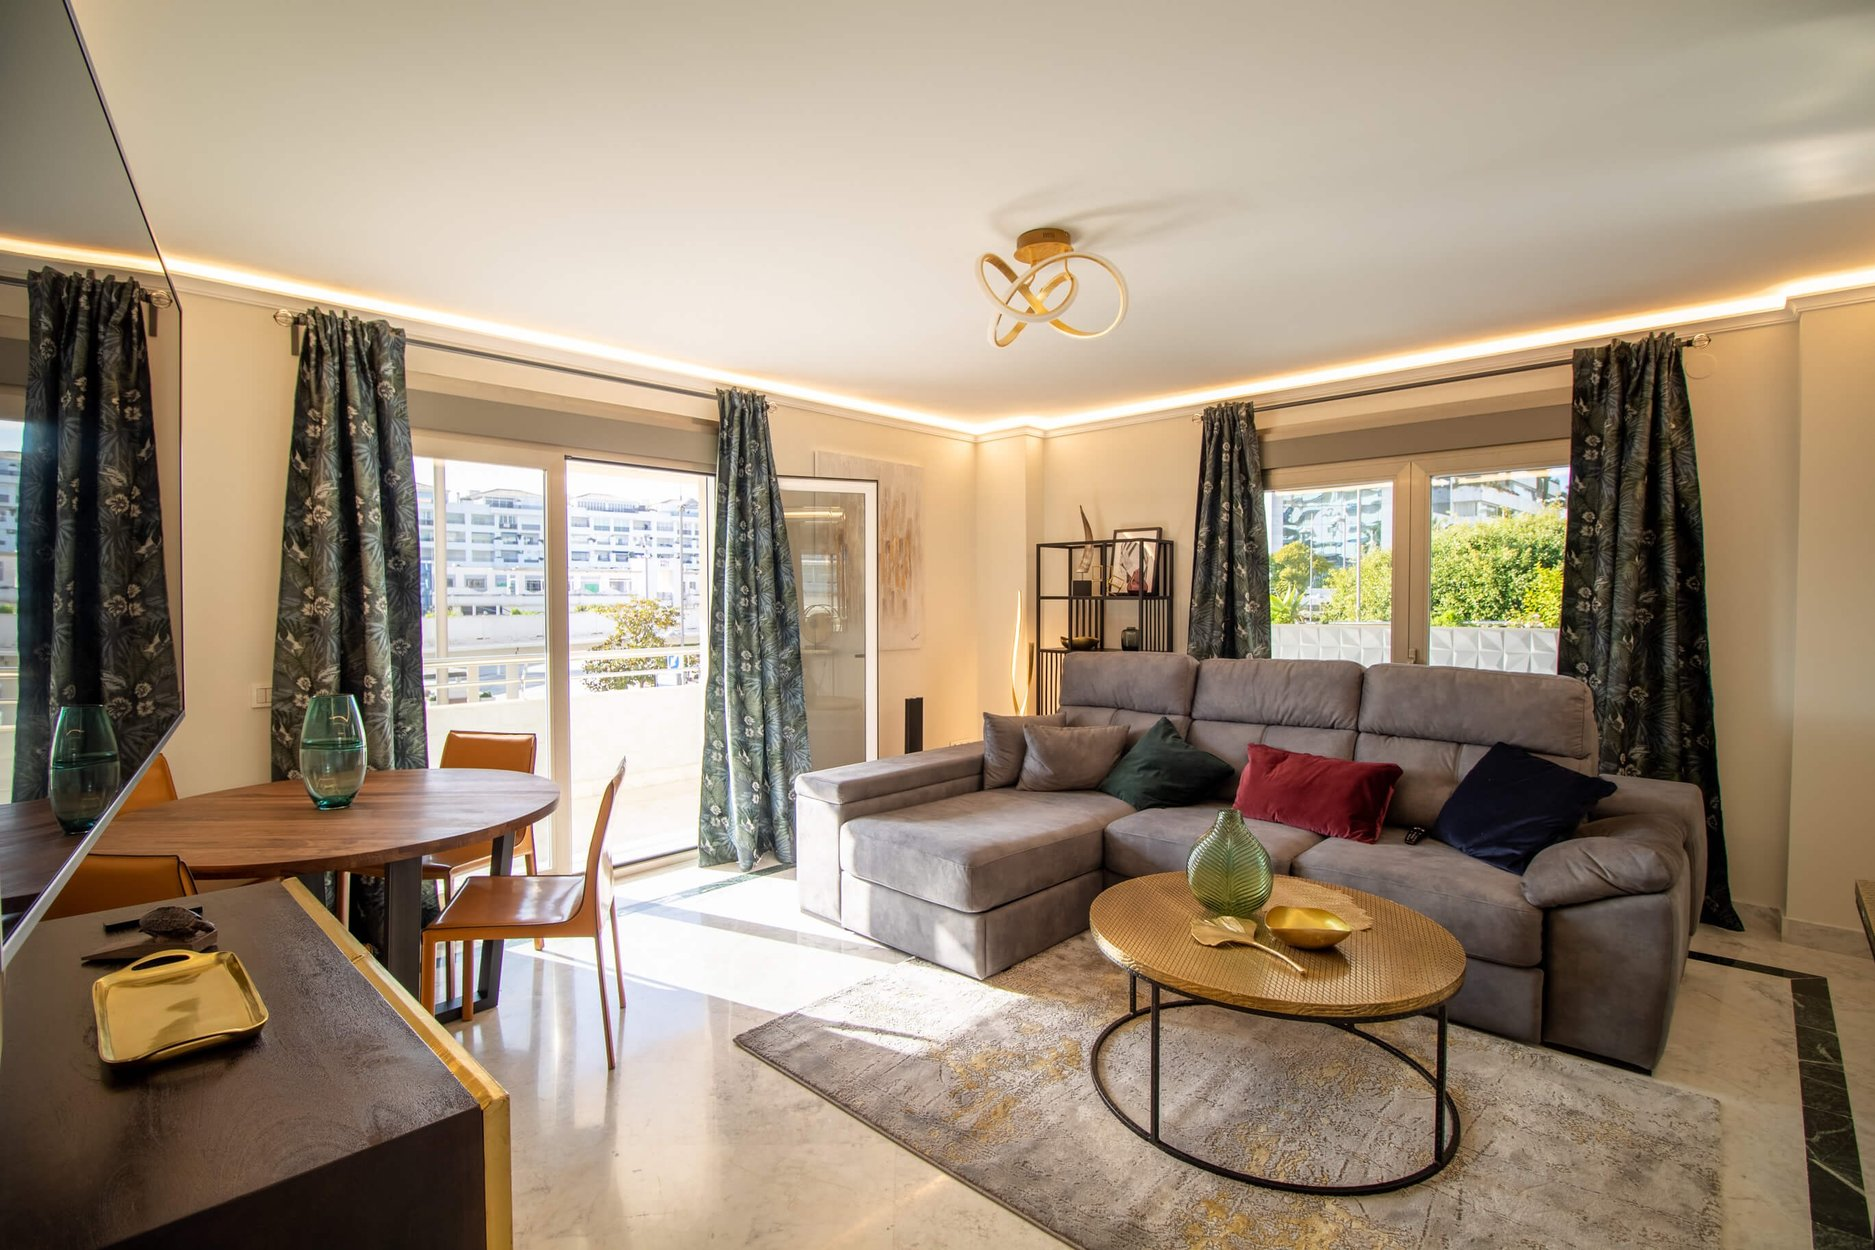 Apartment for rent in Marbella, Marina Banús